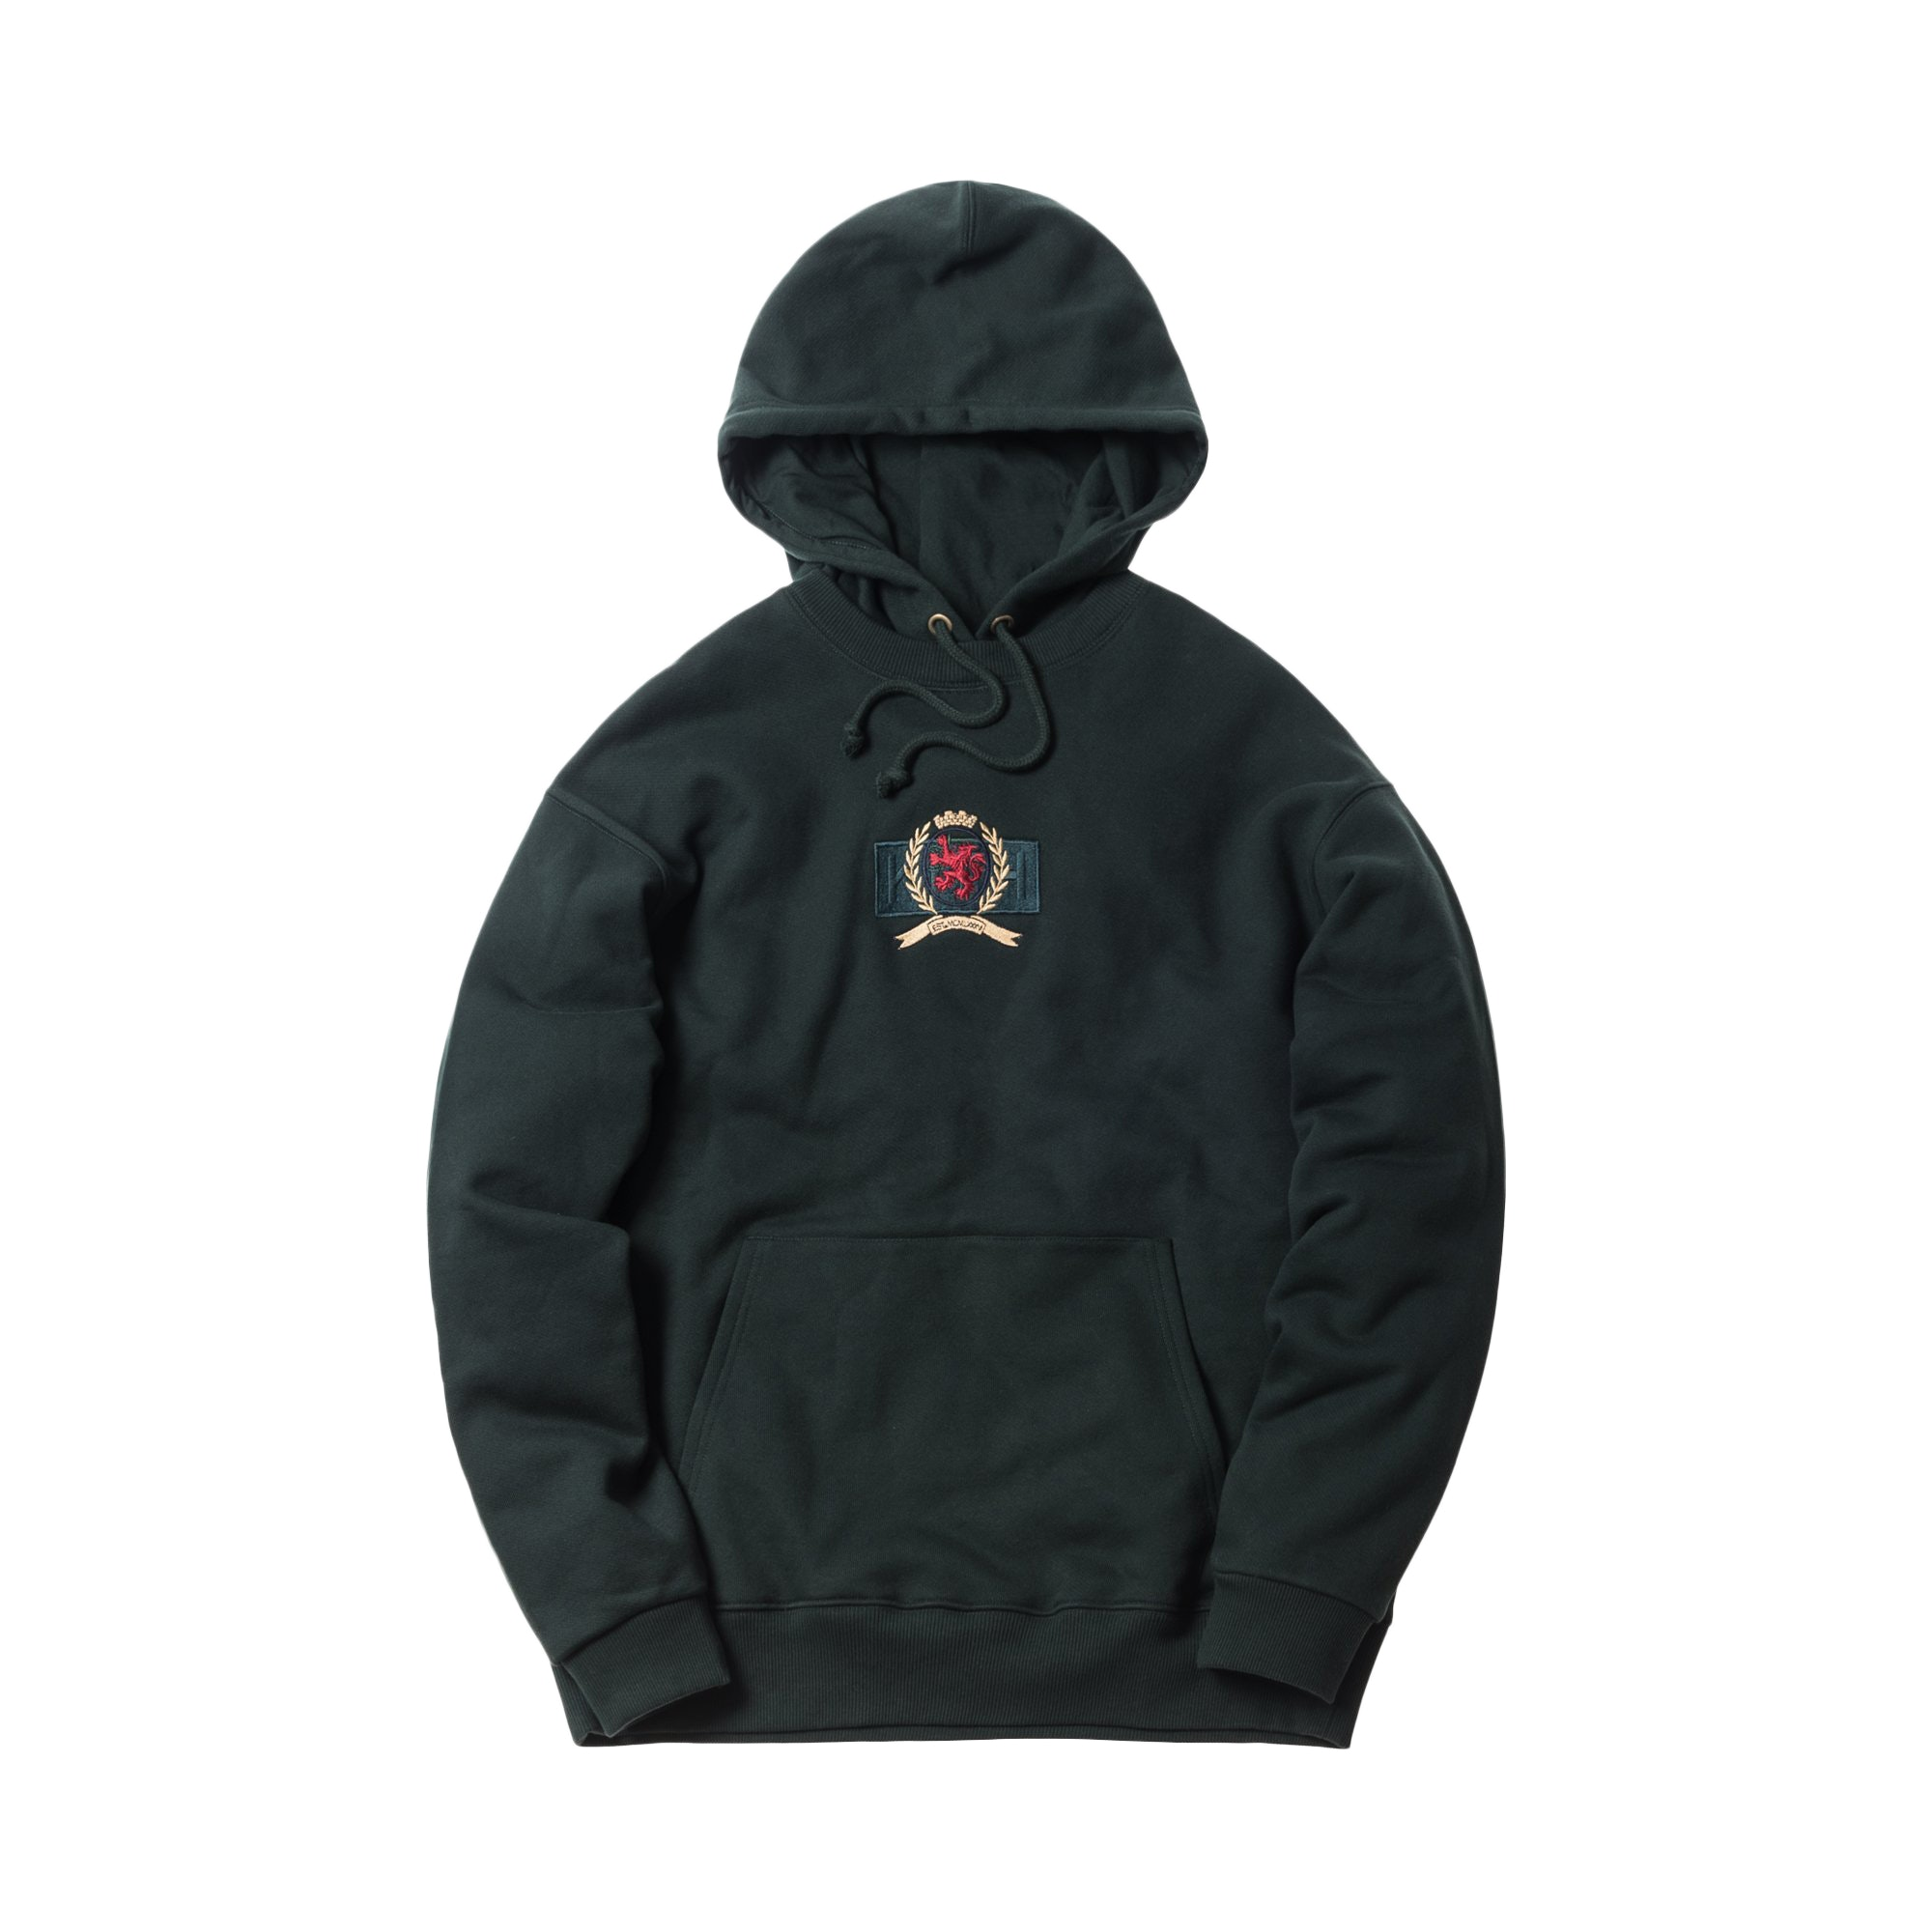 Kith x Tommy Hilfiger Crest Hoodie Forest